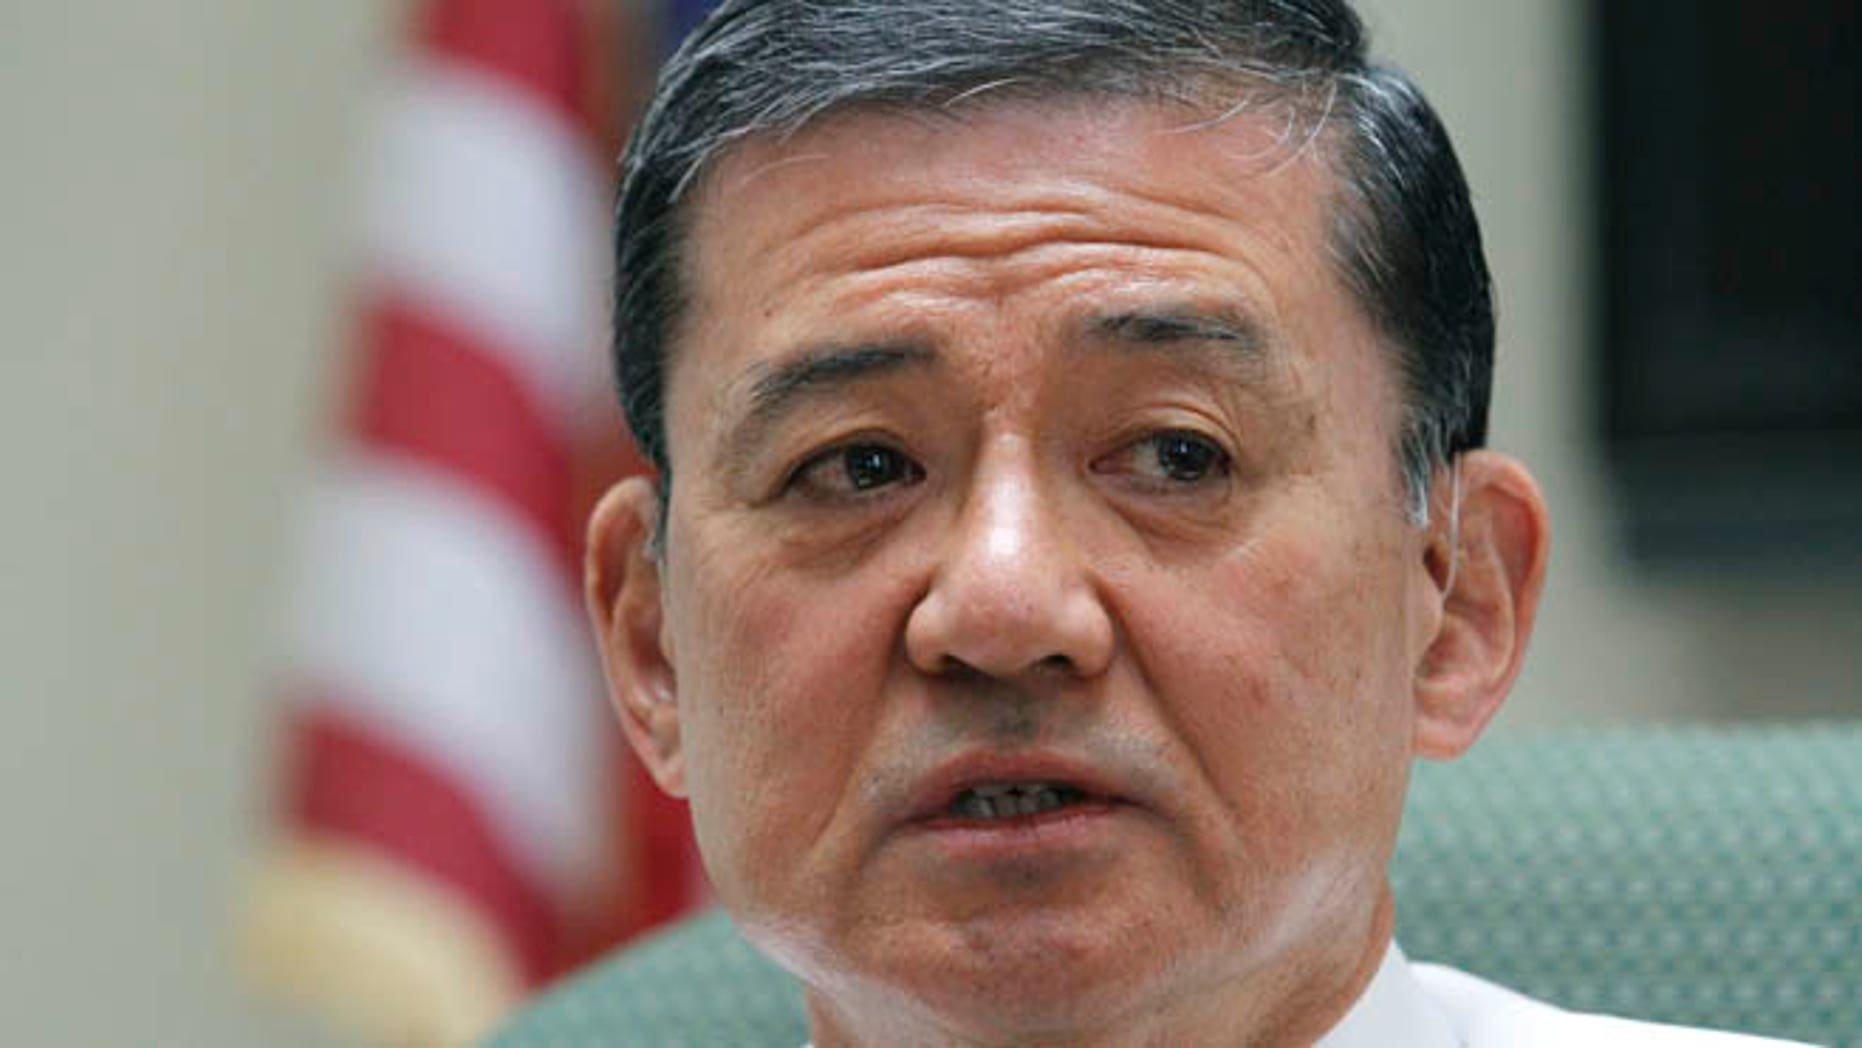 April 12, 2012: Veterans Affairs Secretary Eric Shinseki makes remarks during a visit to a medical center in Coatesville, Pa.